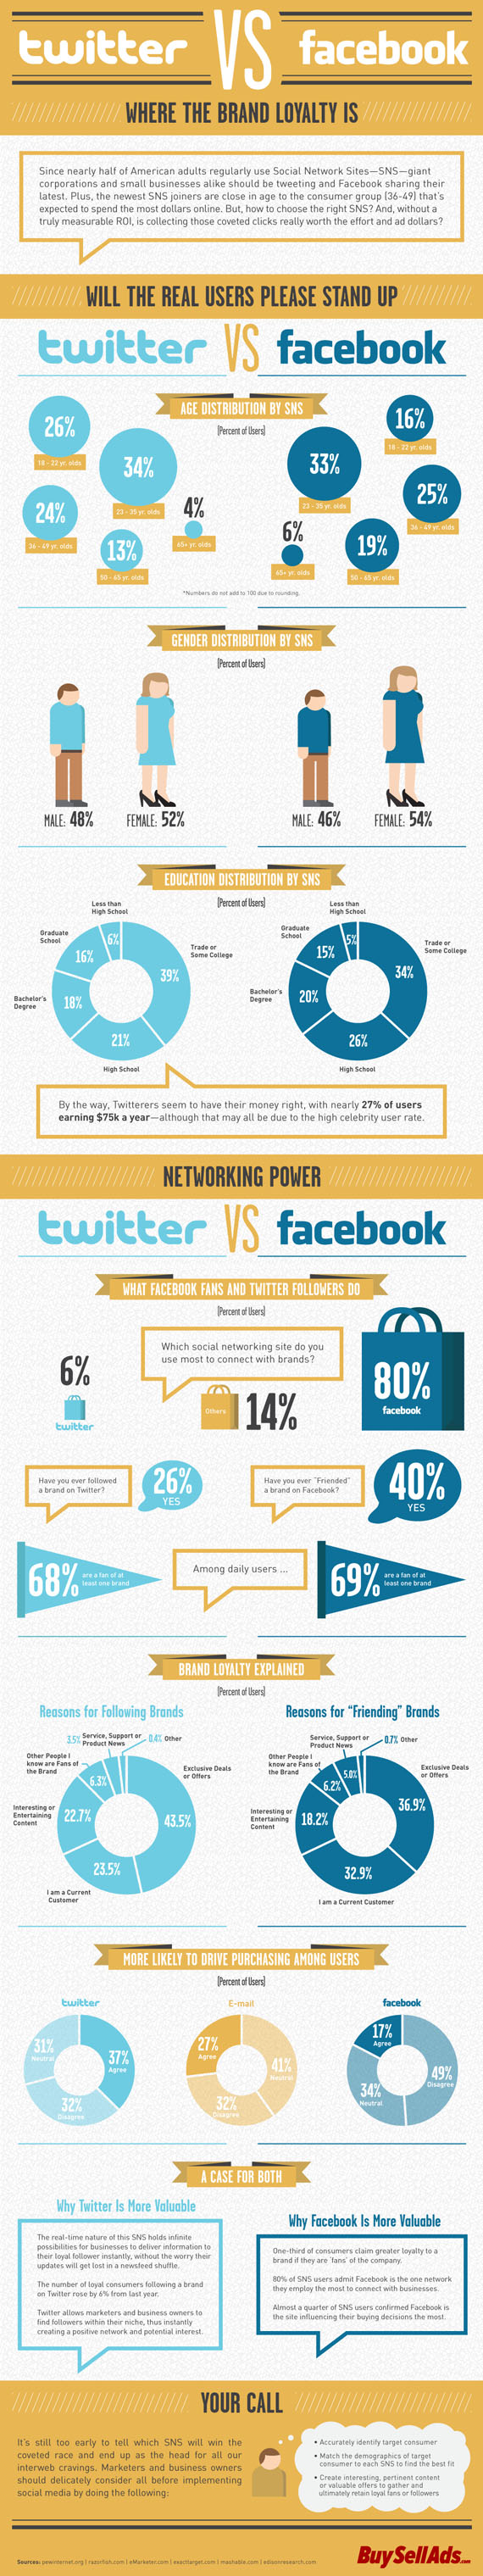 twitter-facebook-infographie